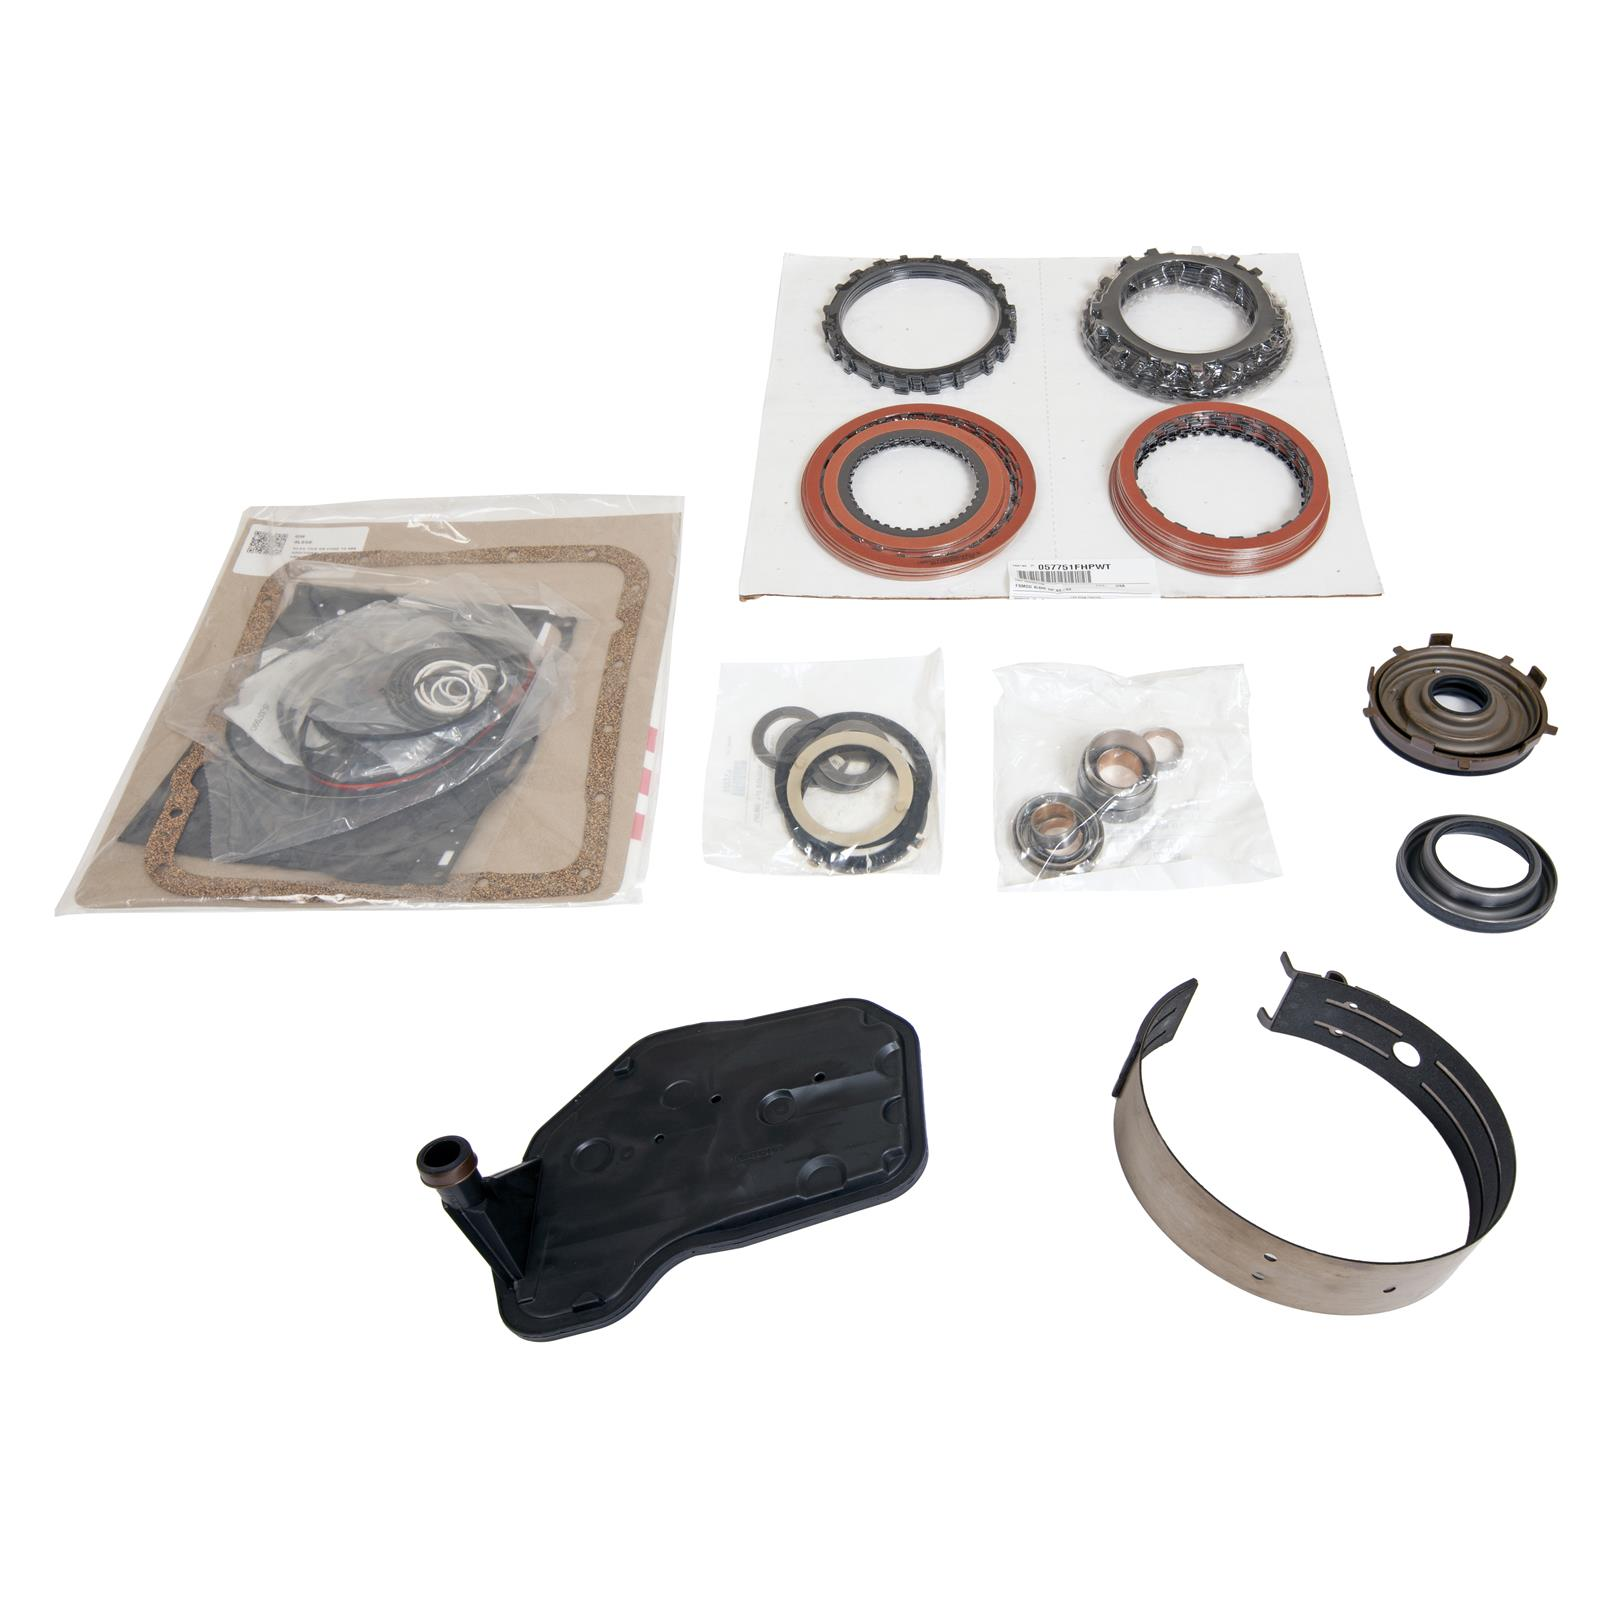 Summit Racing® High Performance Automatic Transmission Rebuild Kits  SUM-705025